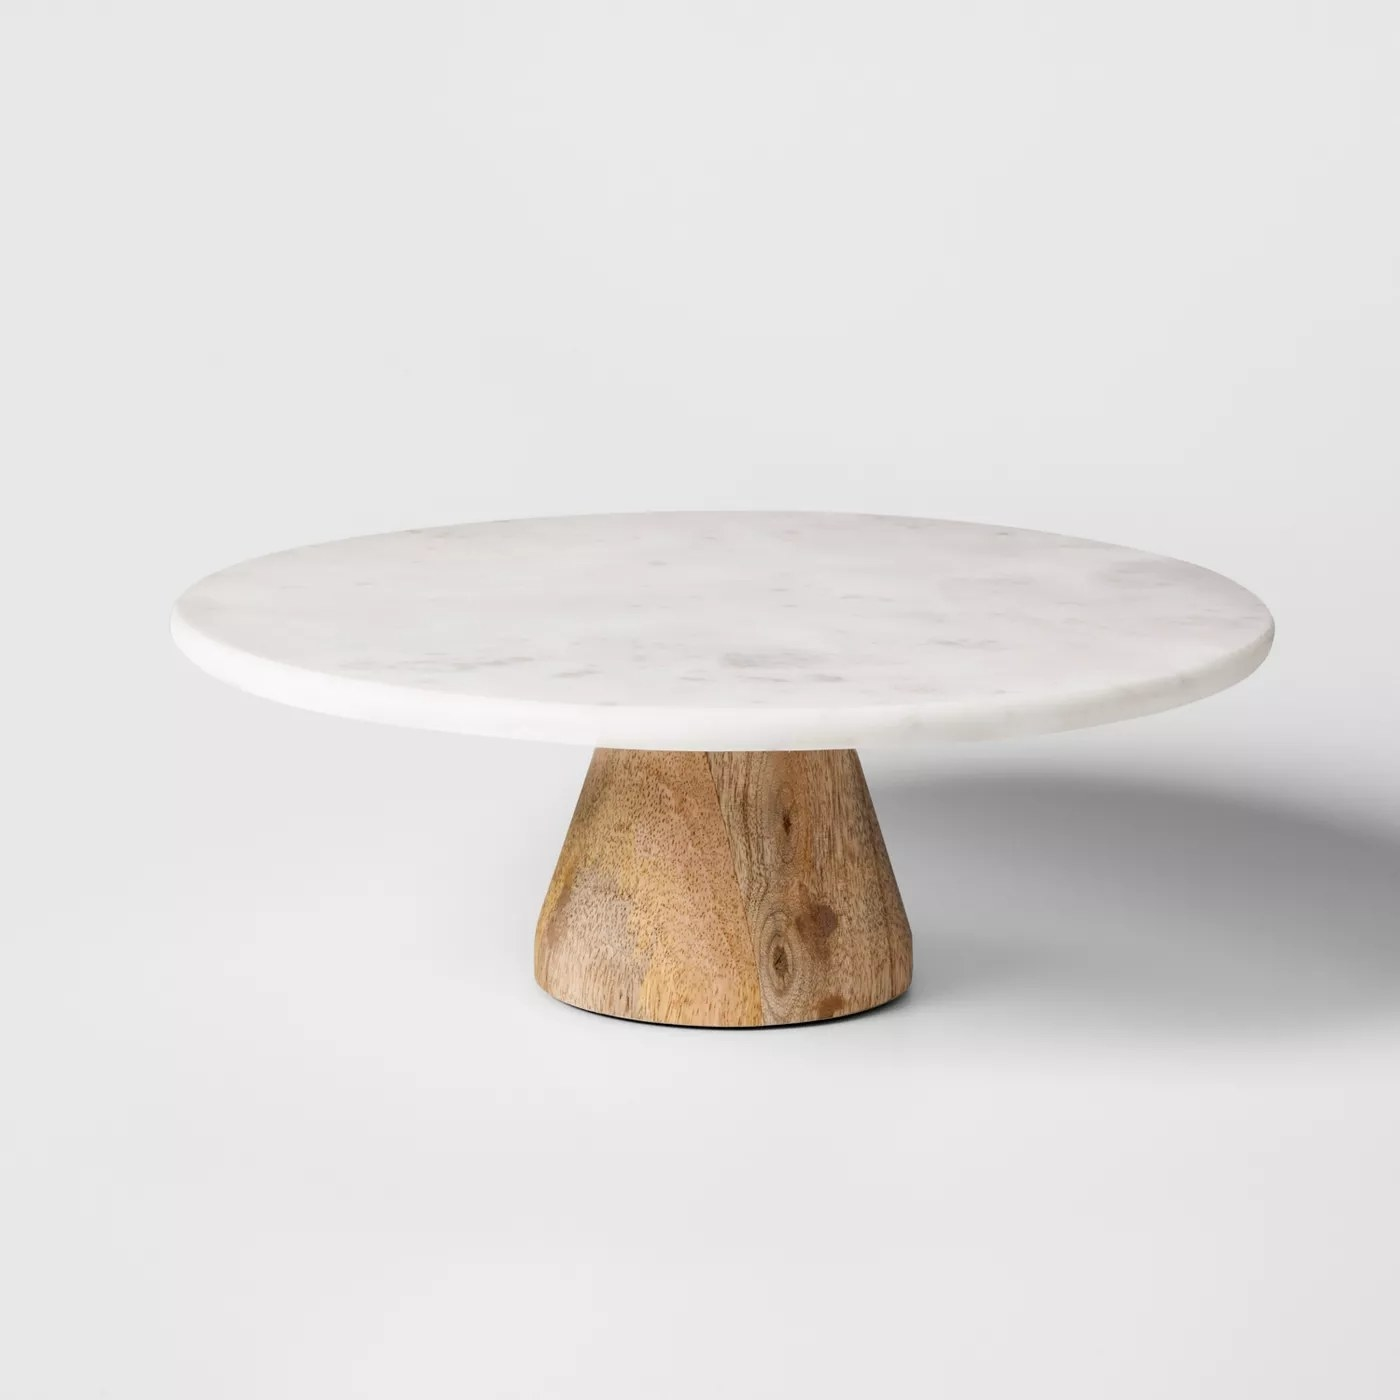 The empty cake stand